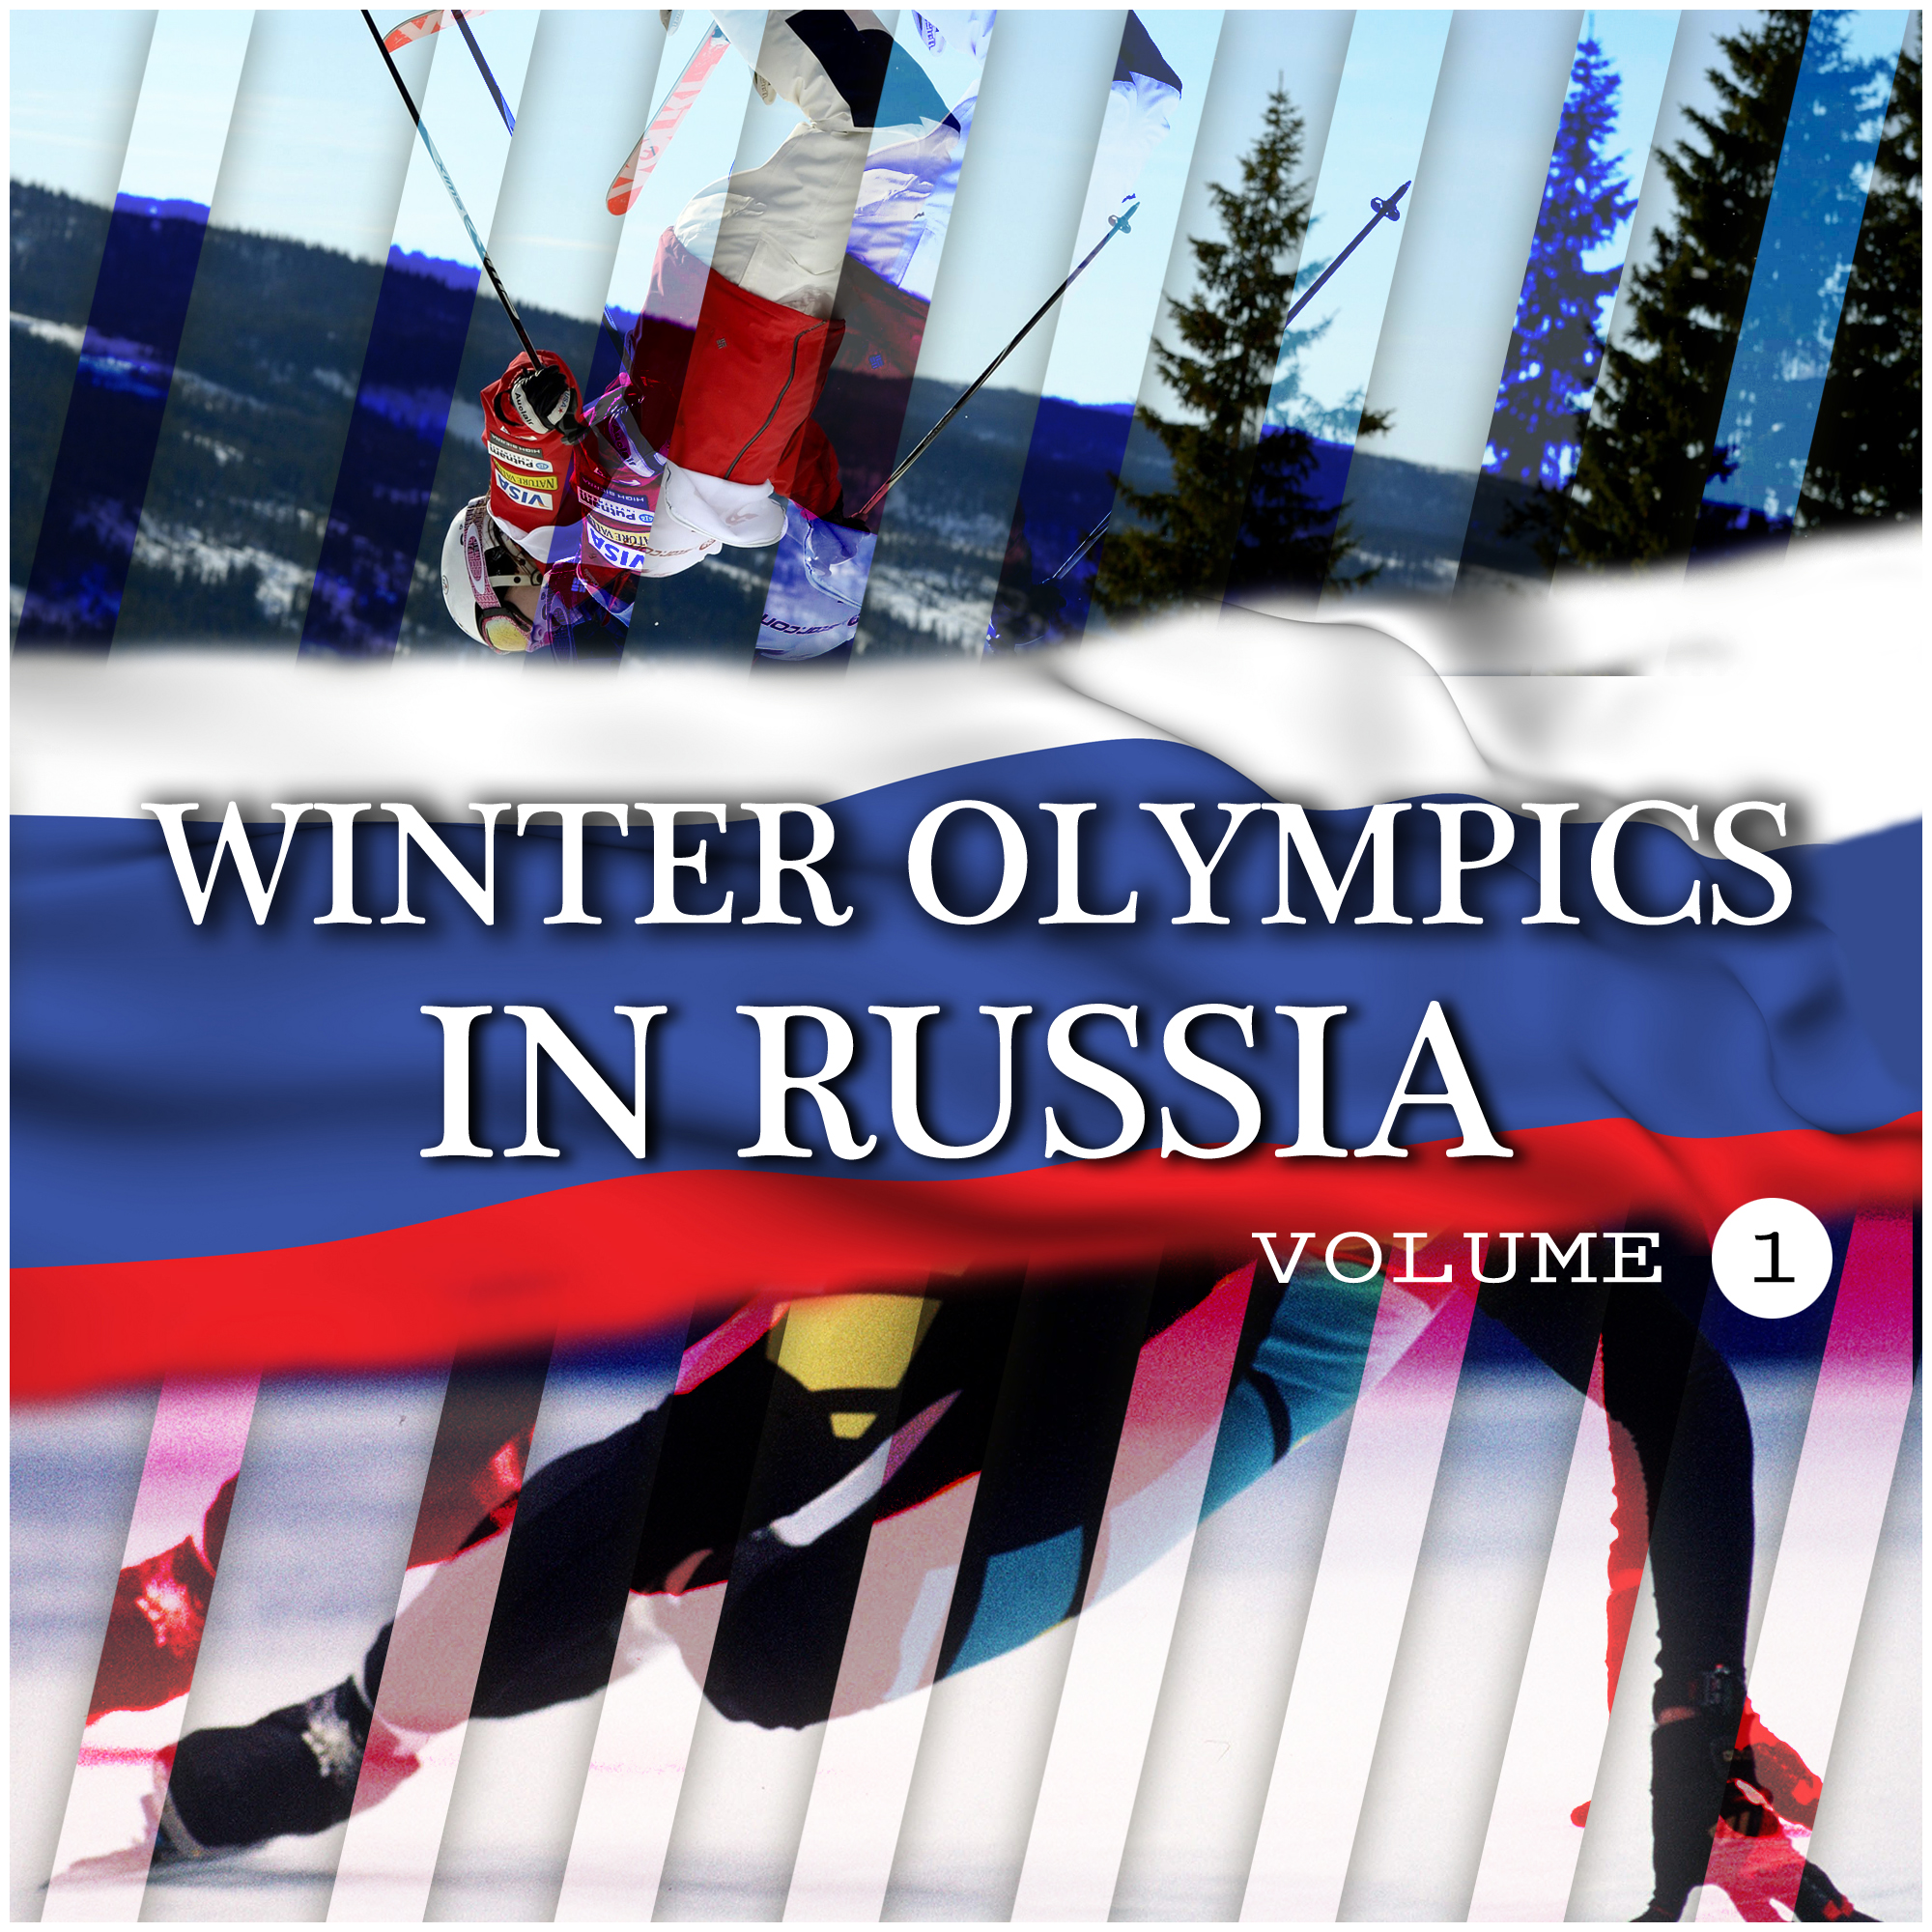 Winter Olympics In Russia Vol 1.